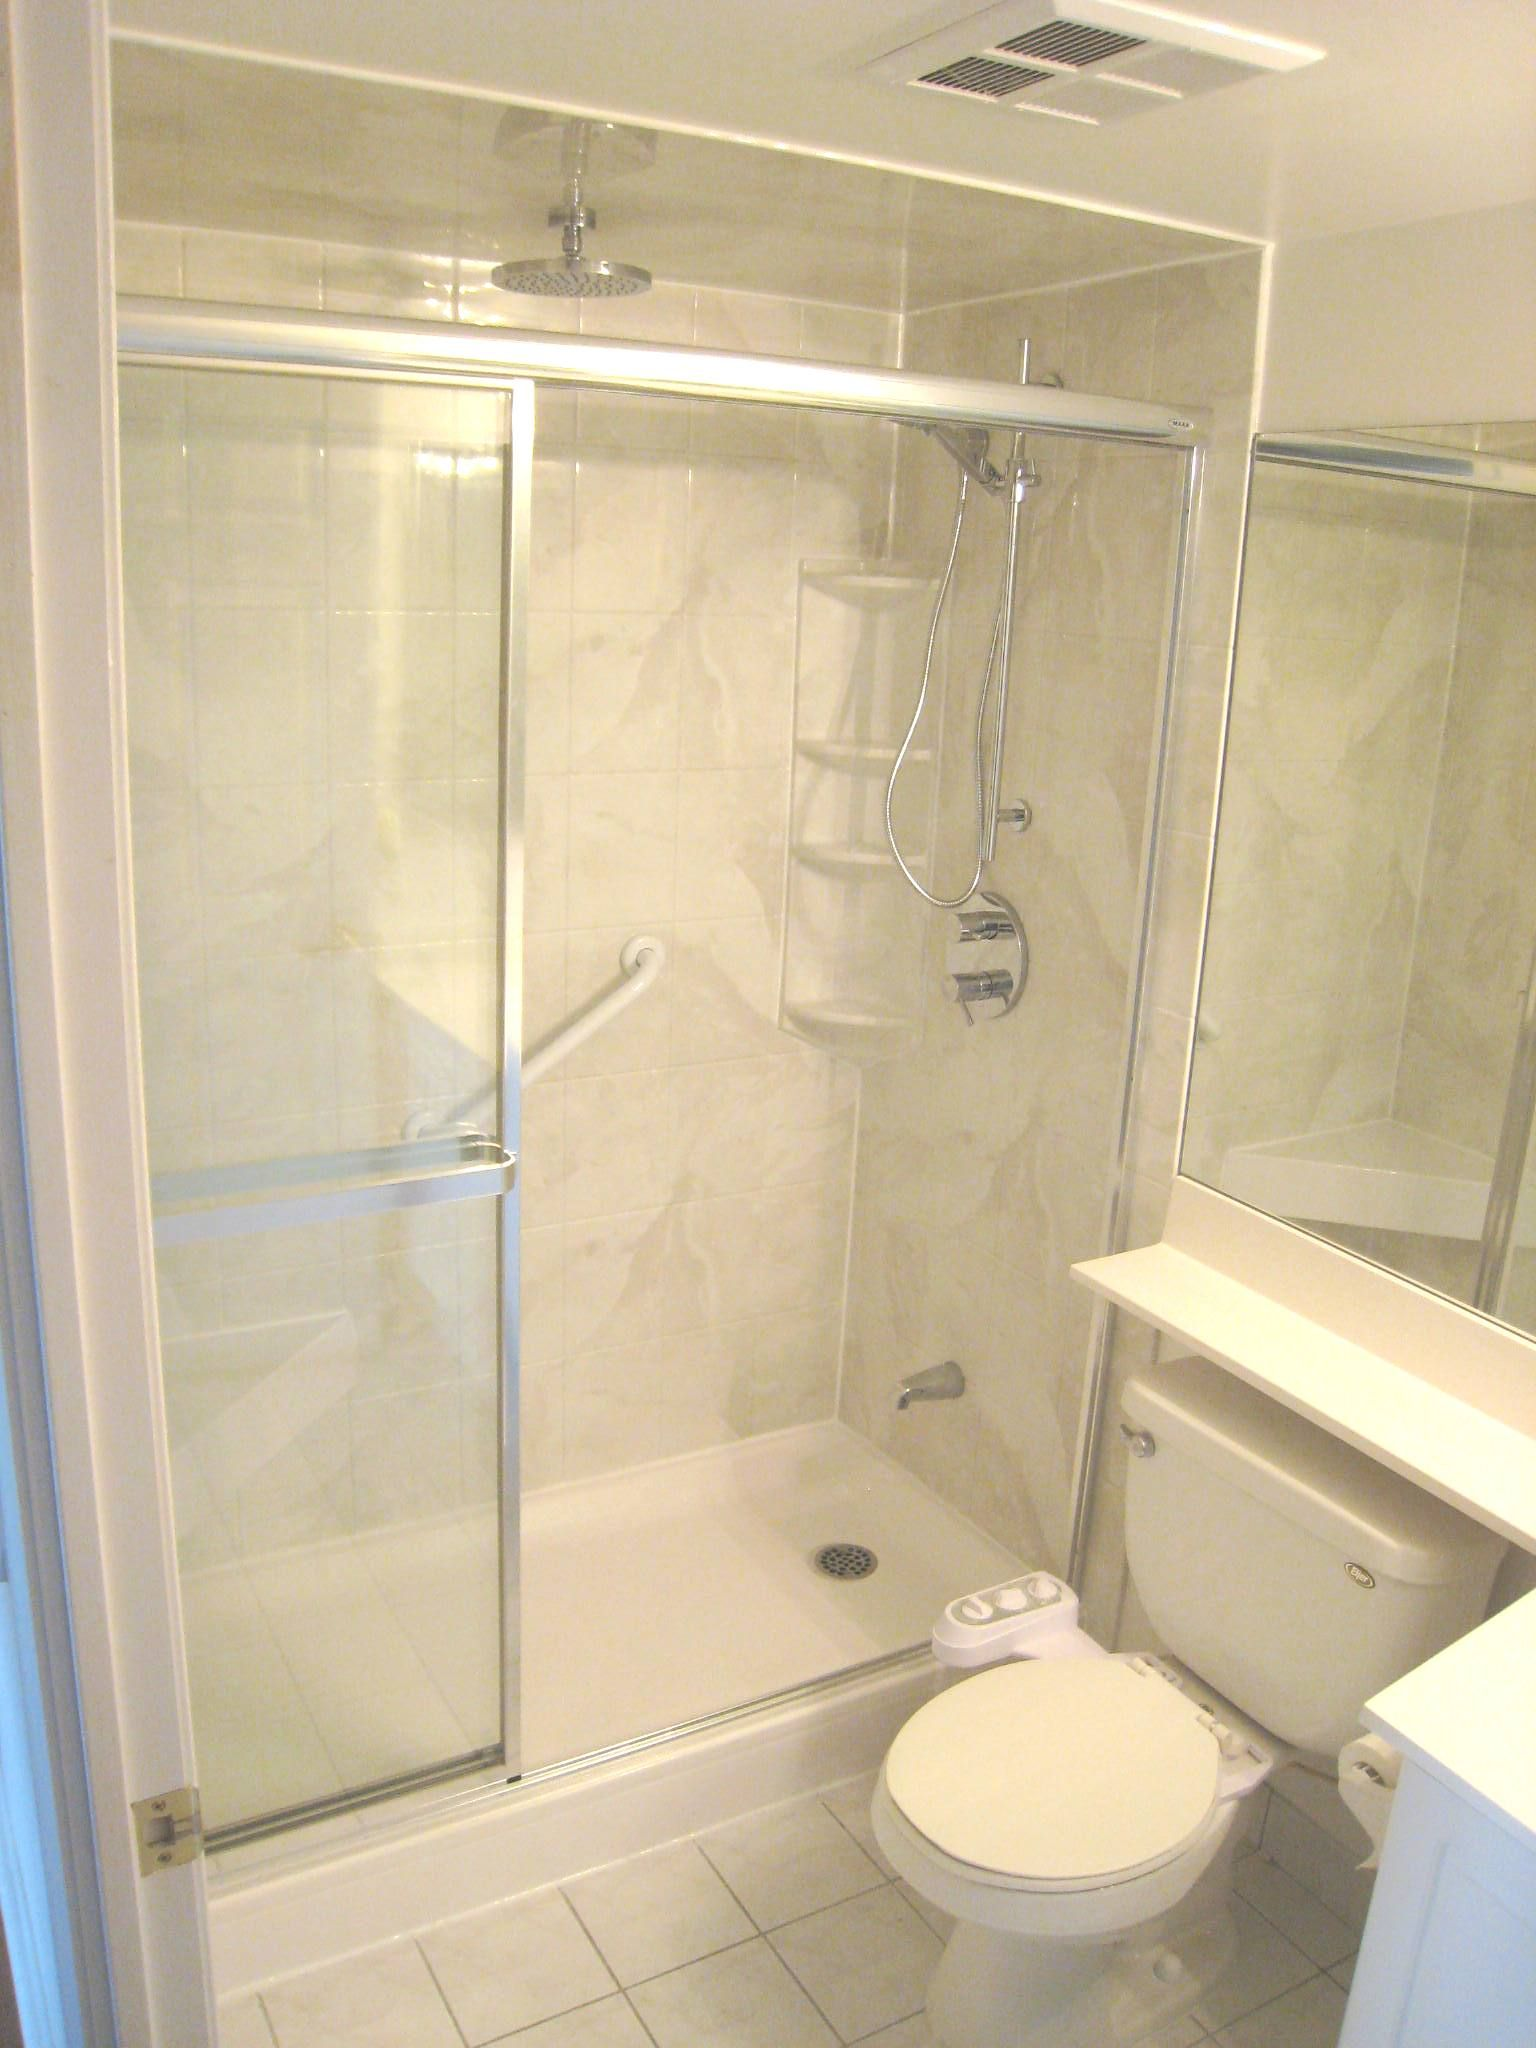 Huge Update To This Bathroom With A Simple Tub To Shower Conversion Using  Acrylic Wall Liners. Just 2 Days From Start To Finish And Super Easy To  Clean And ...